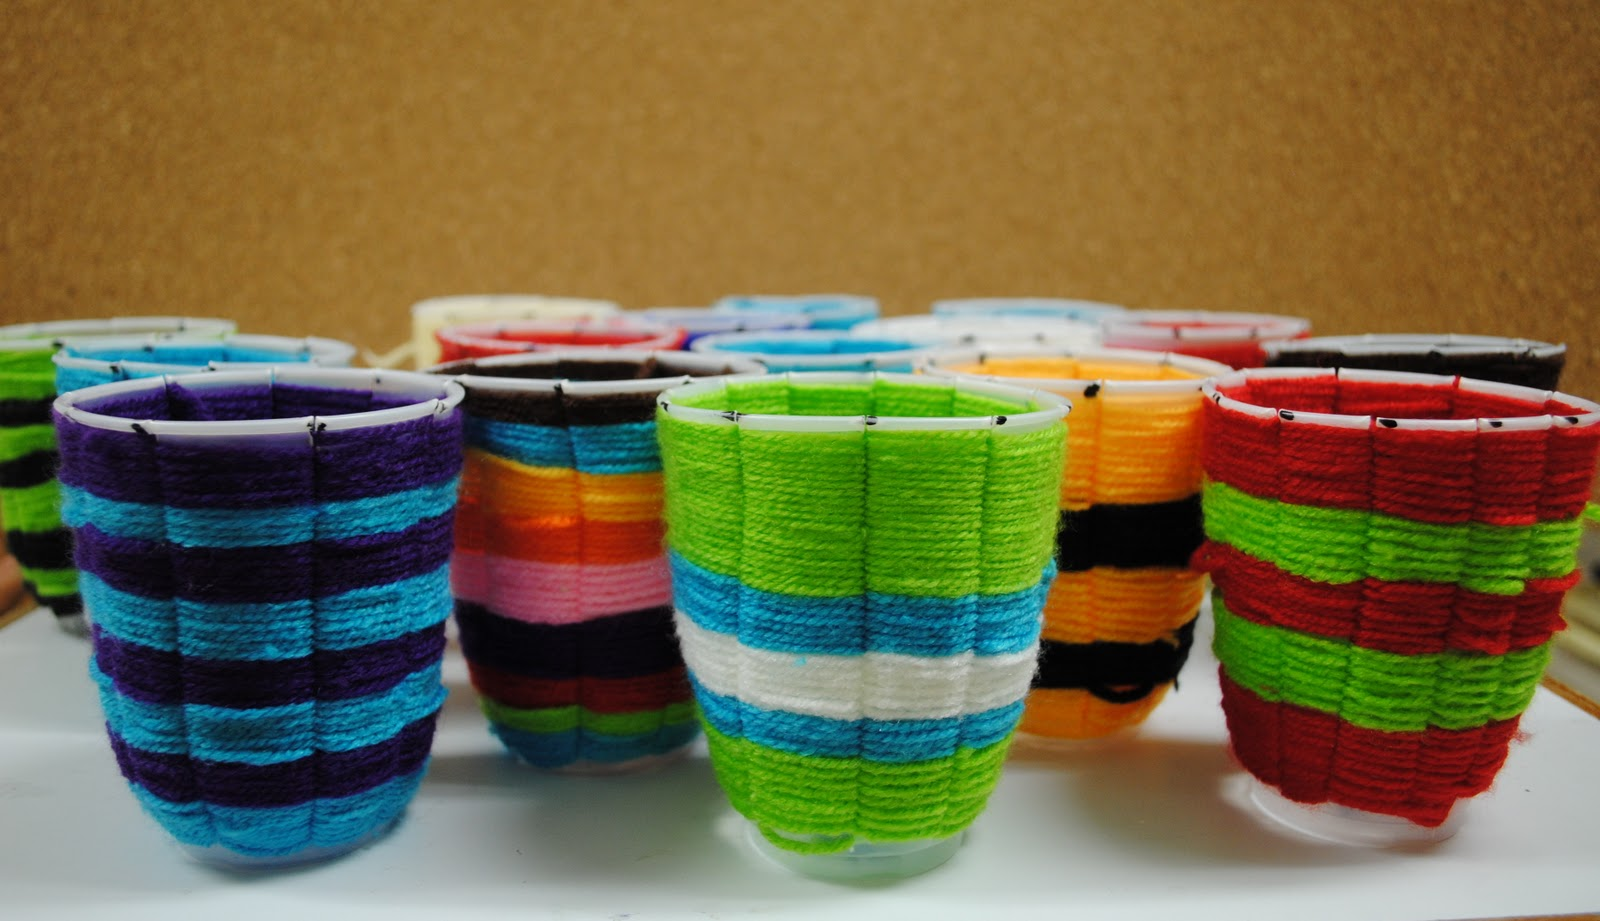 Woven Yarn Basket : Miss ambar?s art class weaving like the hopi people